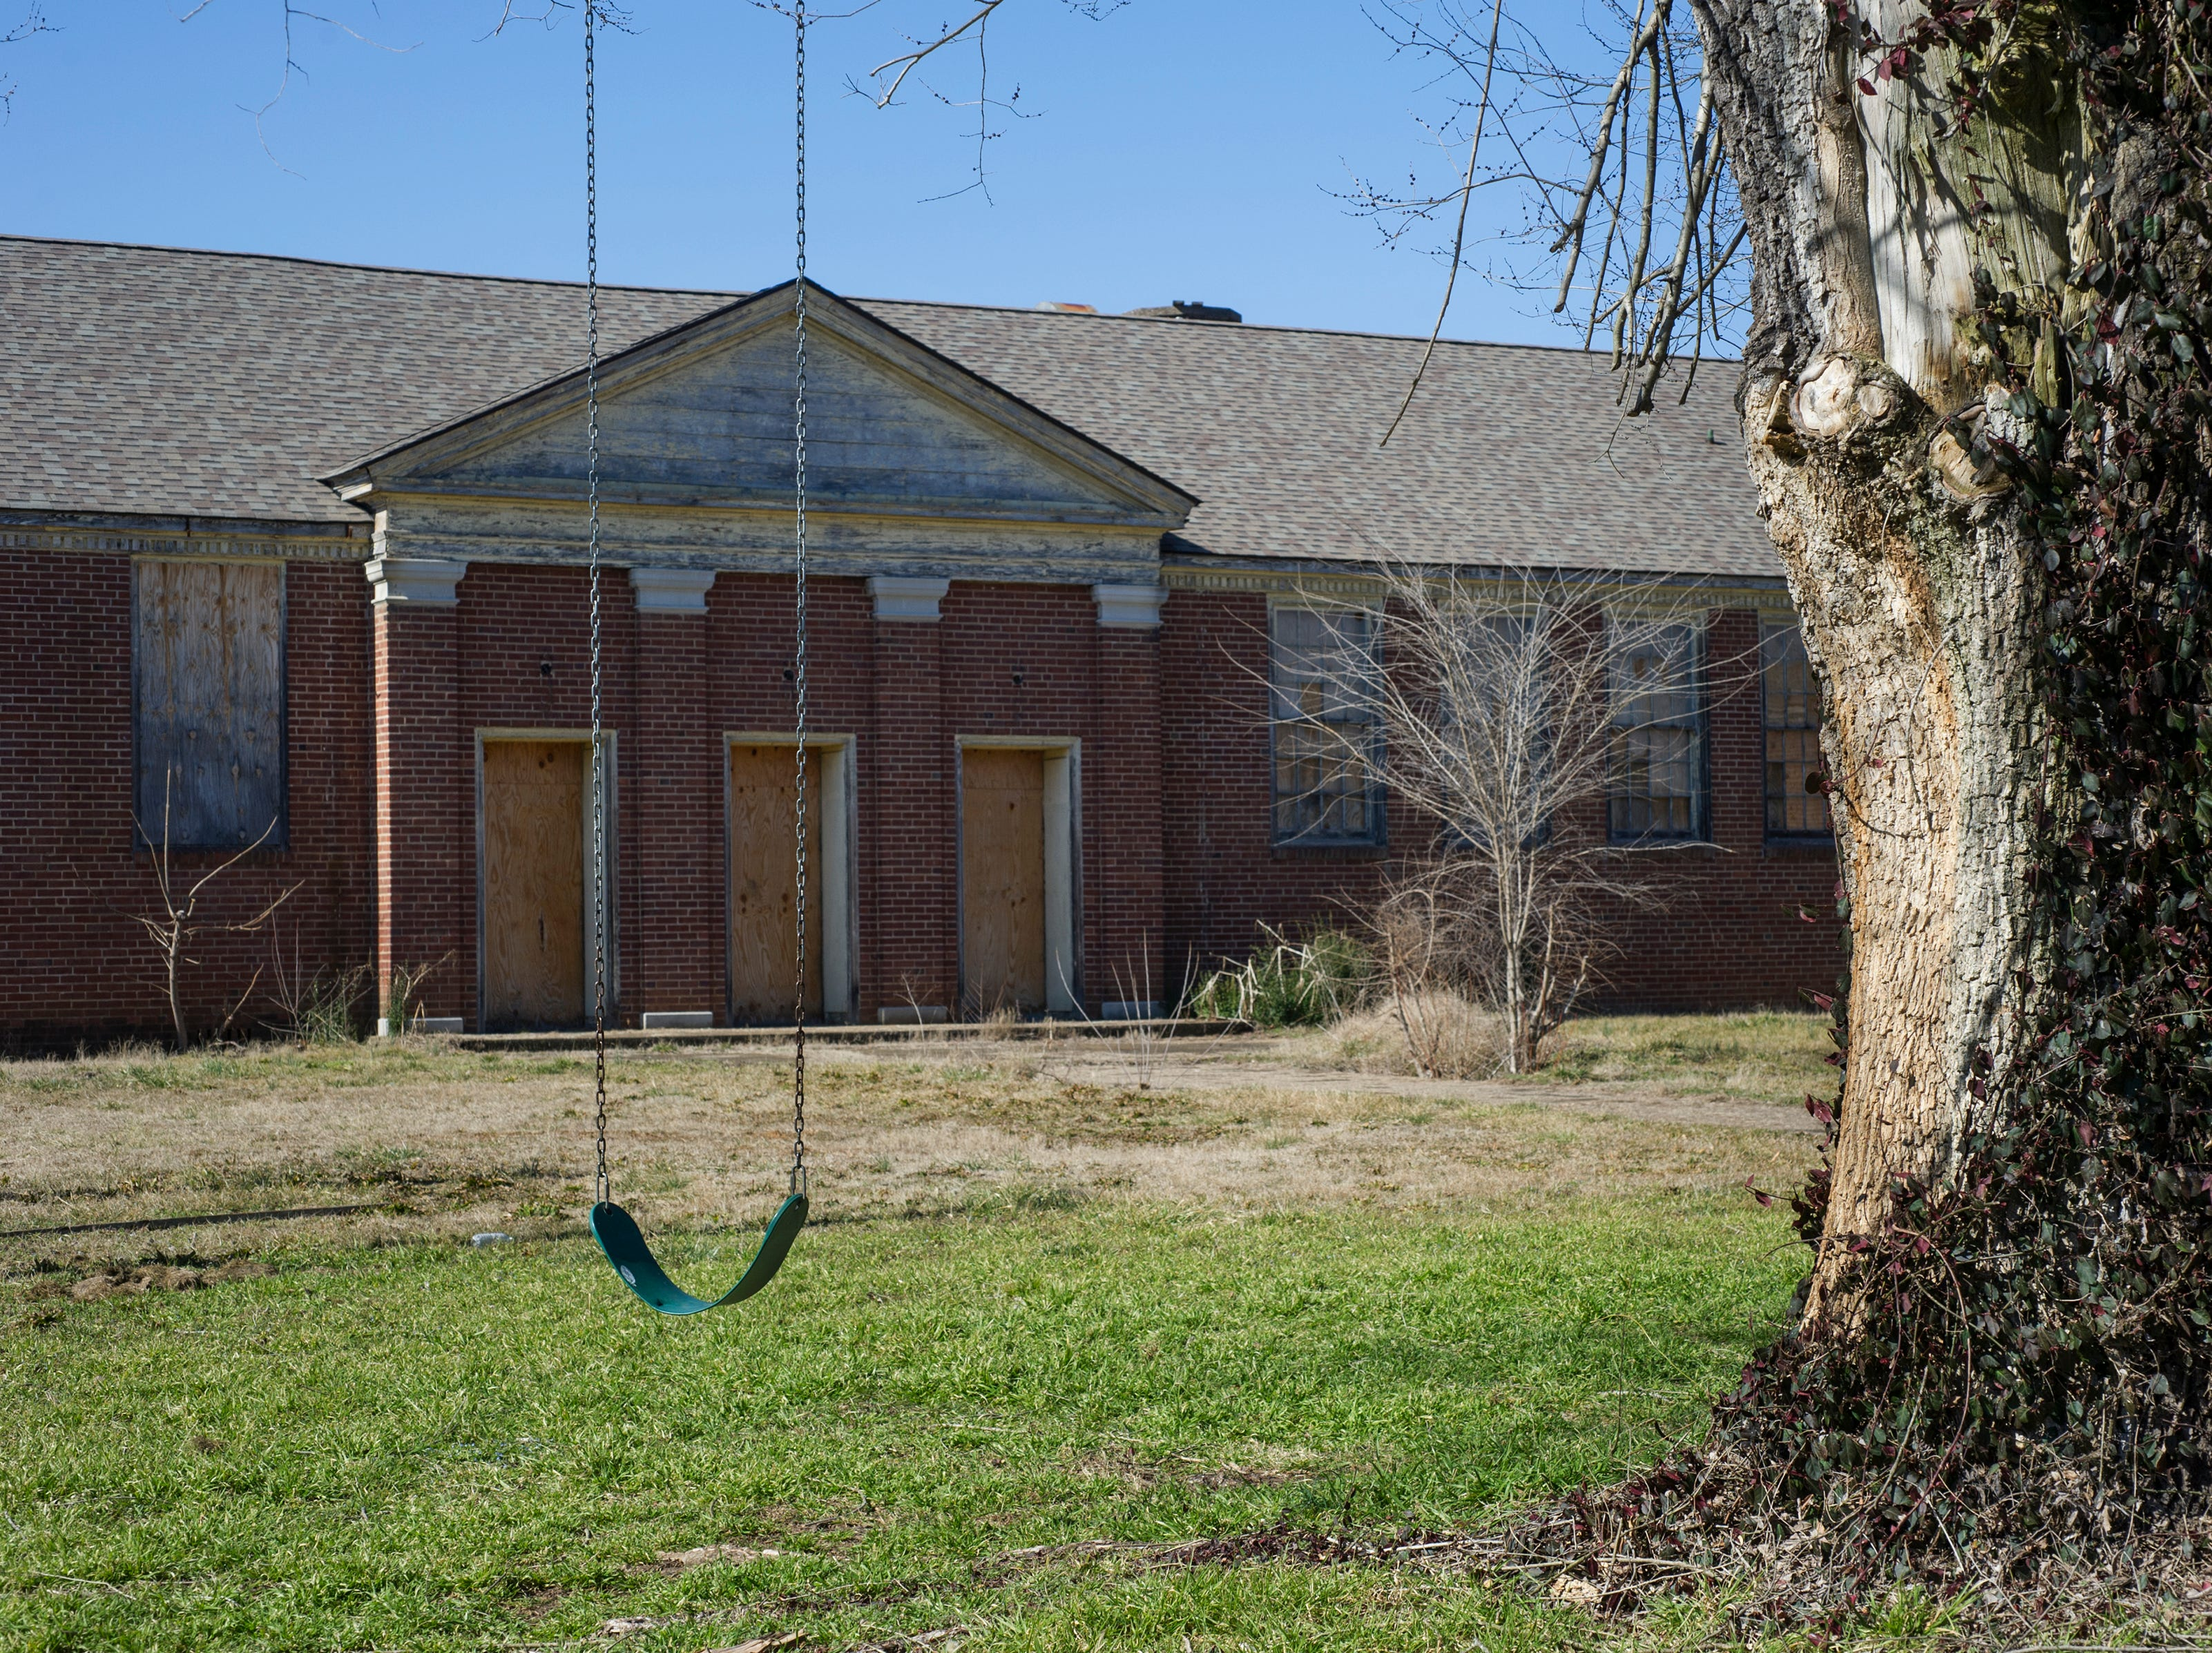 The old South High School building, pictured Wednesday, Feb. 11, 2015, could possibly be purchased by city of Knoxville, by condemnation if necessary. Bahman Kasraei, who bought the building at auction in 2008, has received numerous citations from the city and a $50,000 lien for work performed at the building. City Council on Tuesday night will consider authorizing the purchase.Wednesday, Feb. 11, 2015.